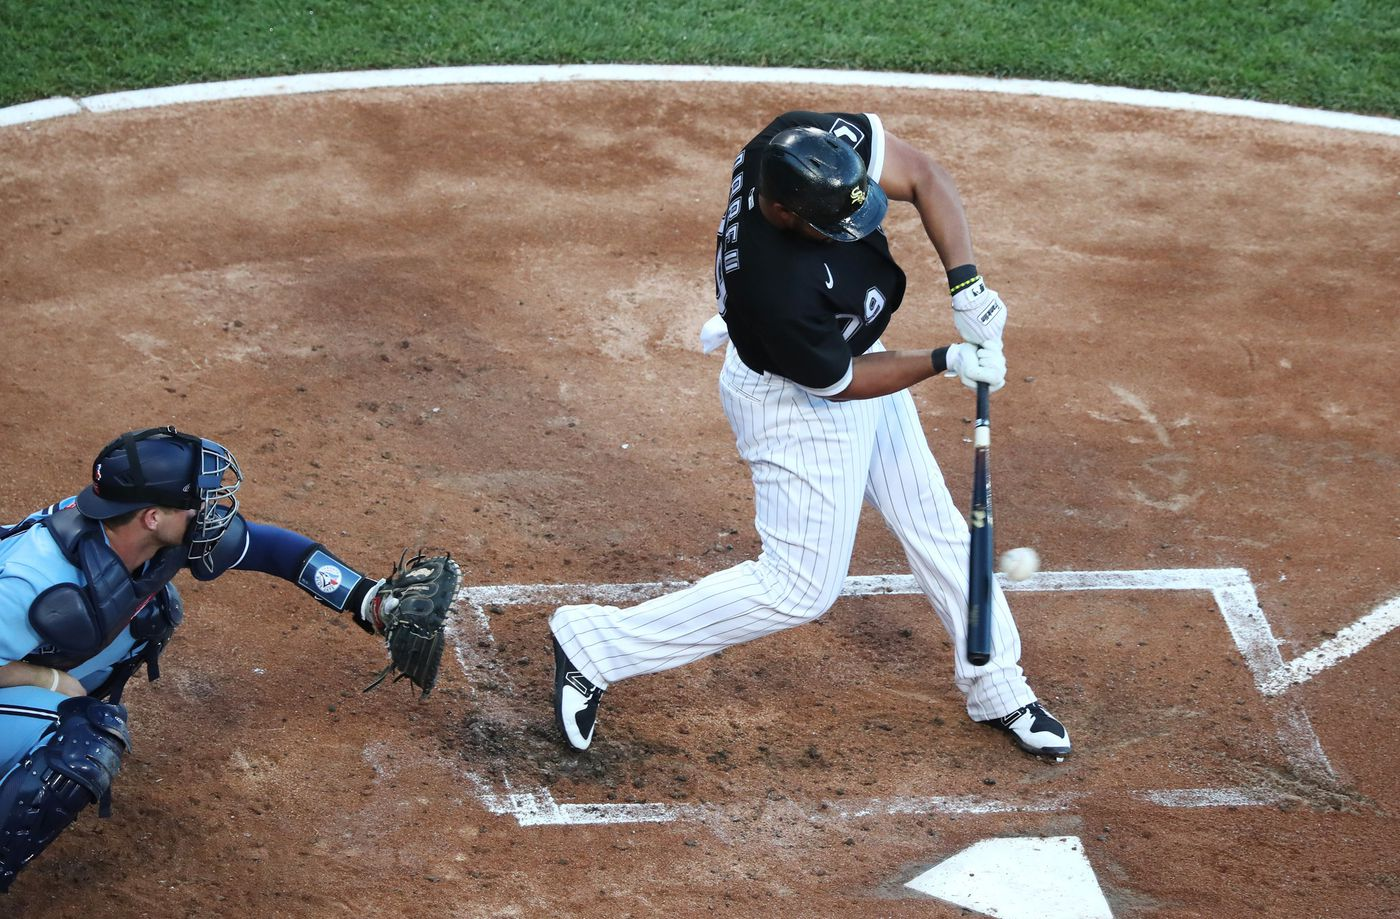 White Sox first baseman José Abreu connects for an RBI double against the Blue Jays in the first inning on June 10, 2021, at Guaranteed Rate Field.